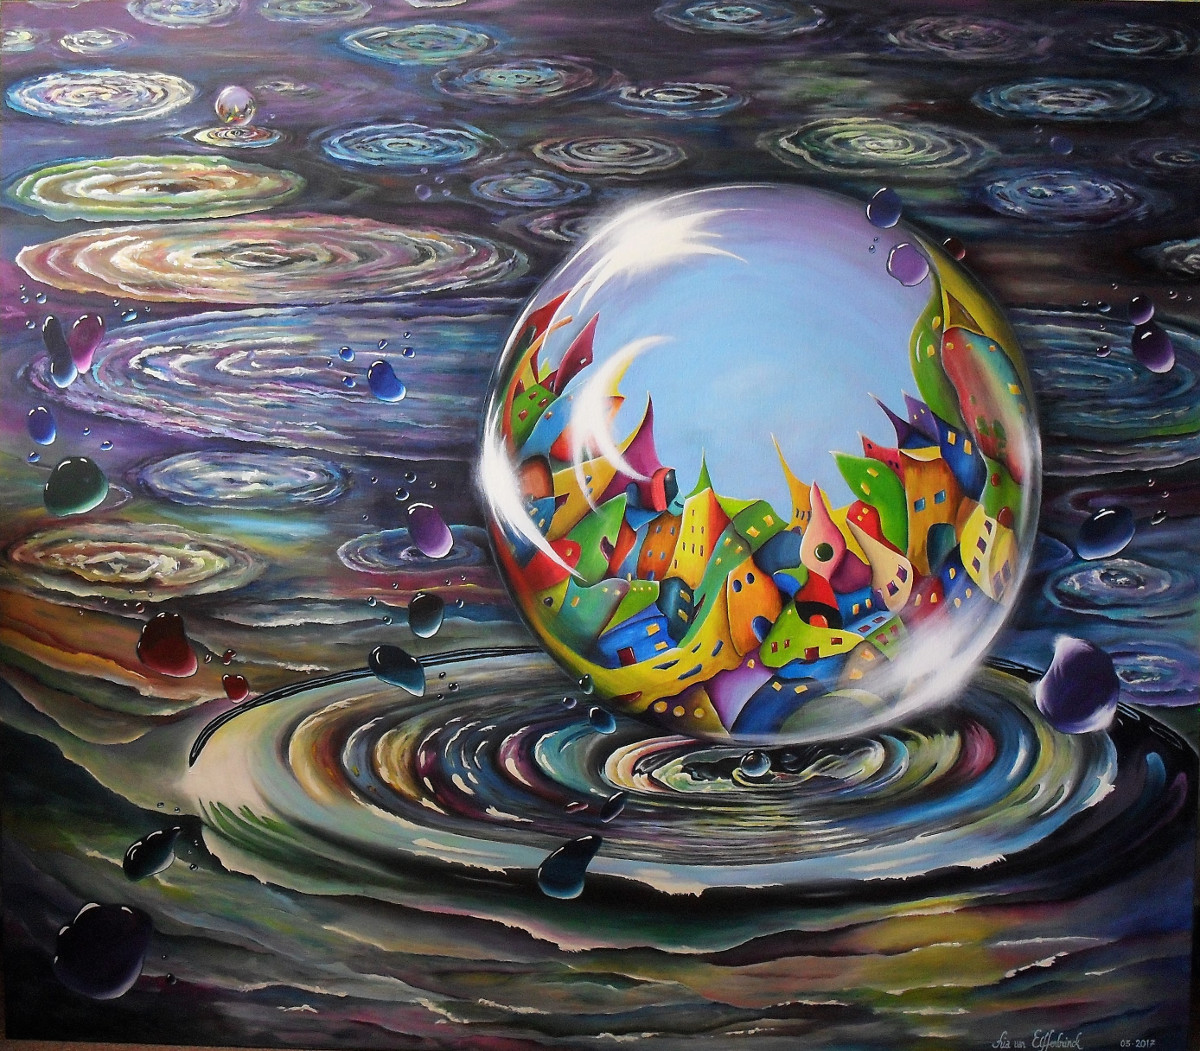 Urbe in Orbem. Acrylic Painting about a city in an orb or in a waterbubble. The big drop with the city in it is coming out of a water circle, all around are little waterdrops with highlights. The painting is very colourful especially the city. In the back you see another drop with a city in it splashing out of the water. Made for the exhibition in De Fundatie in Zwolle, The Netherlands